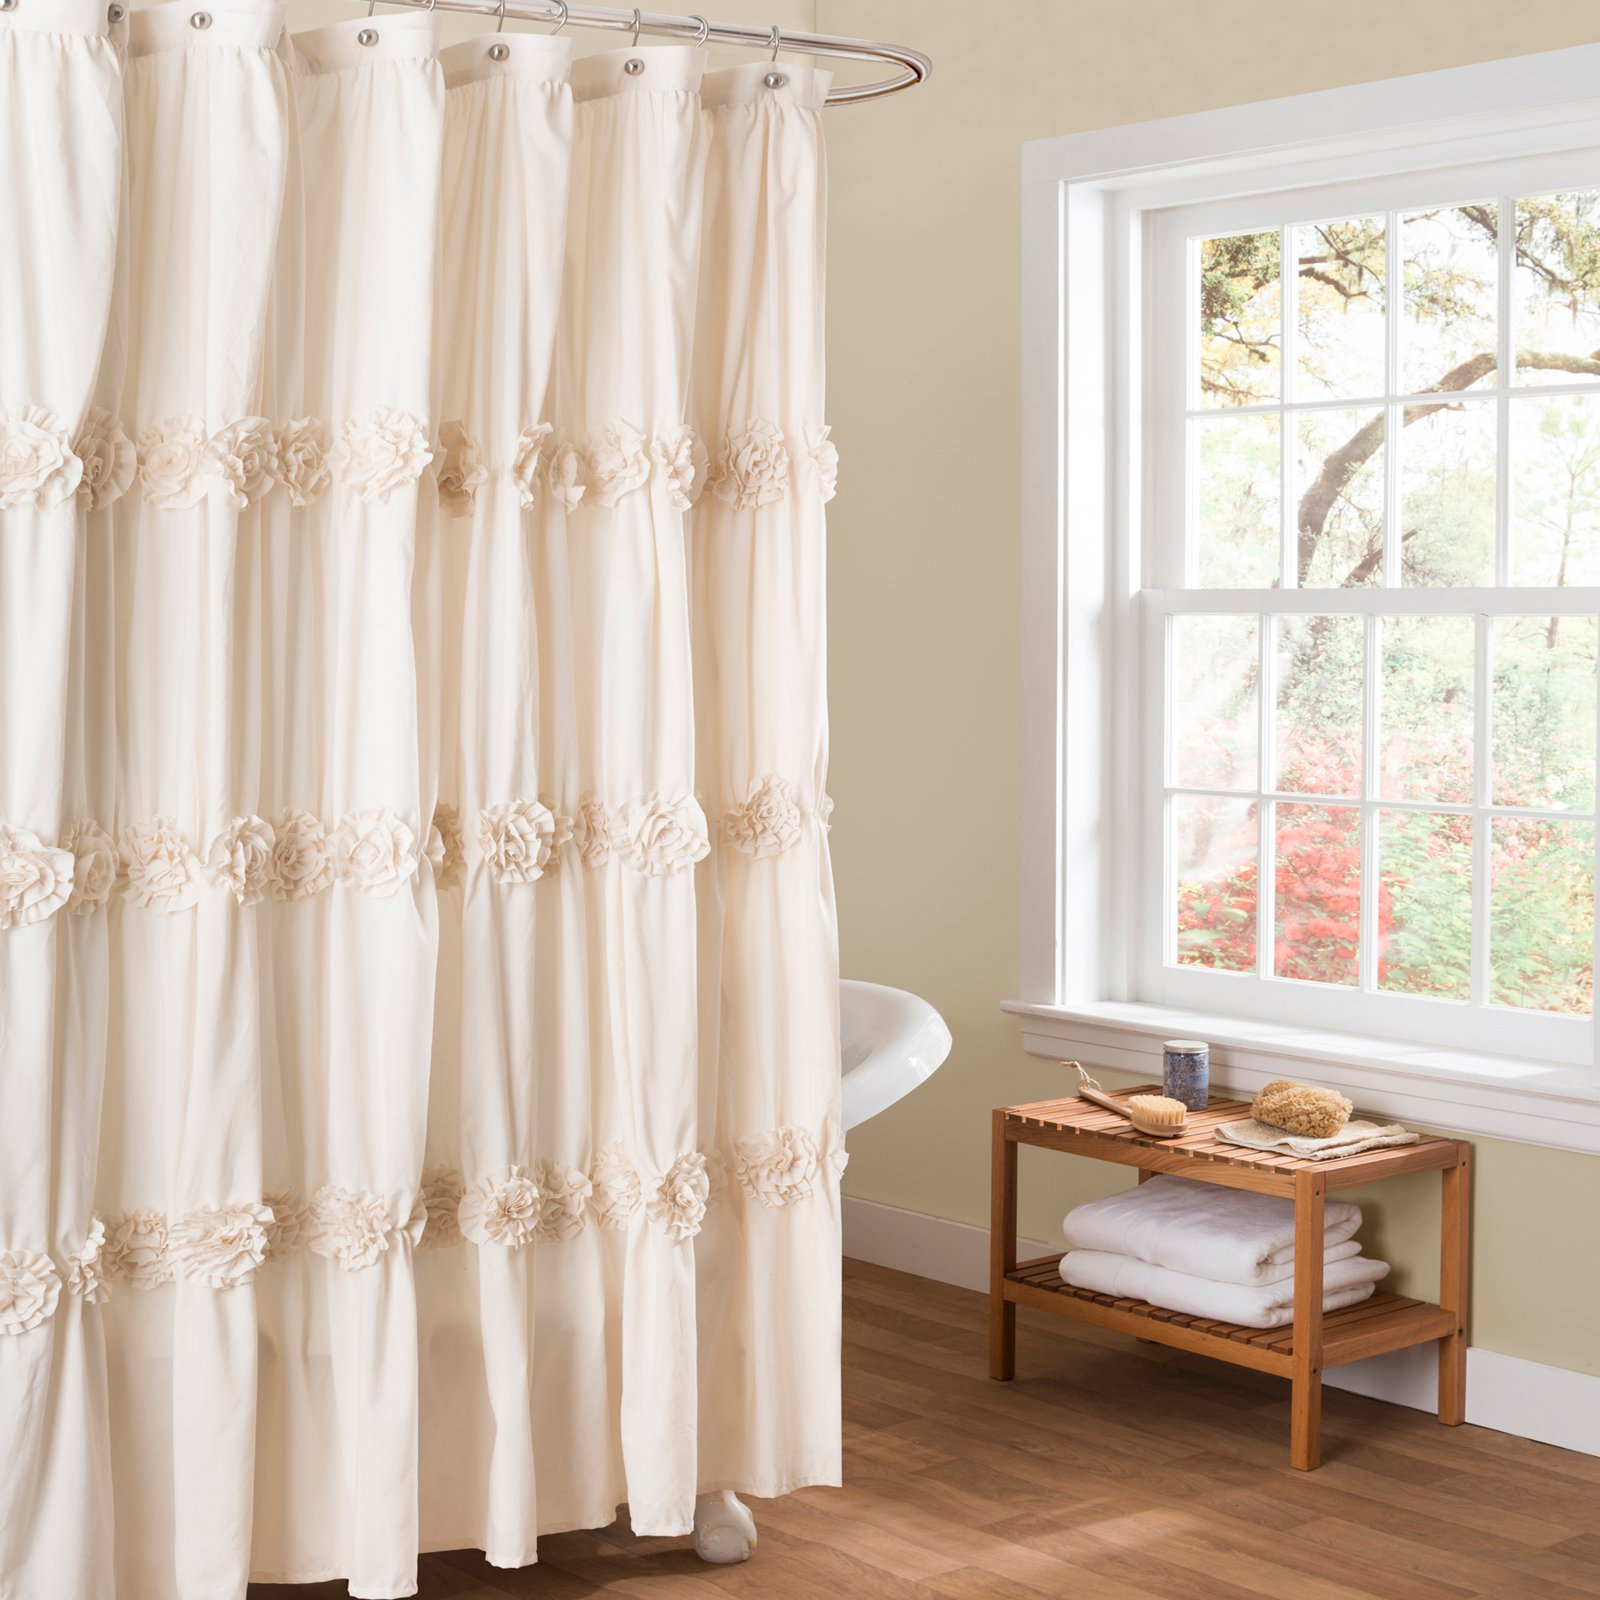 Darla Ivory Shower Curtain by Triangle Home Fashions